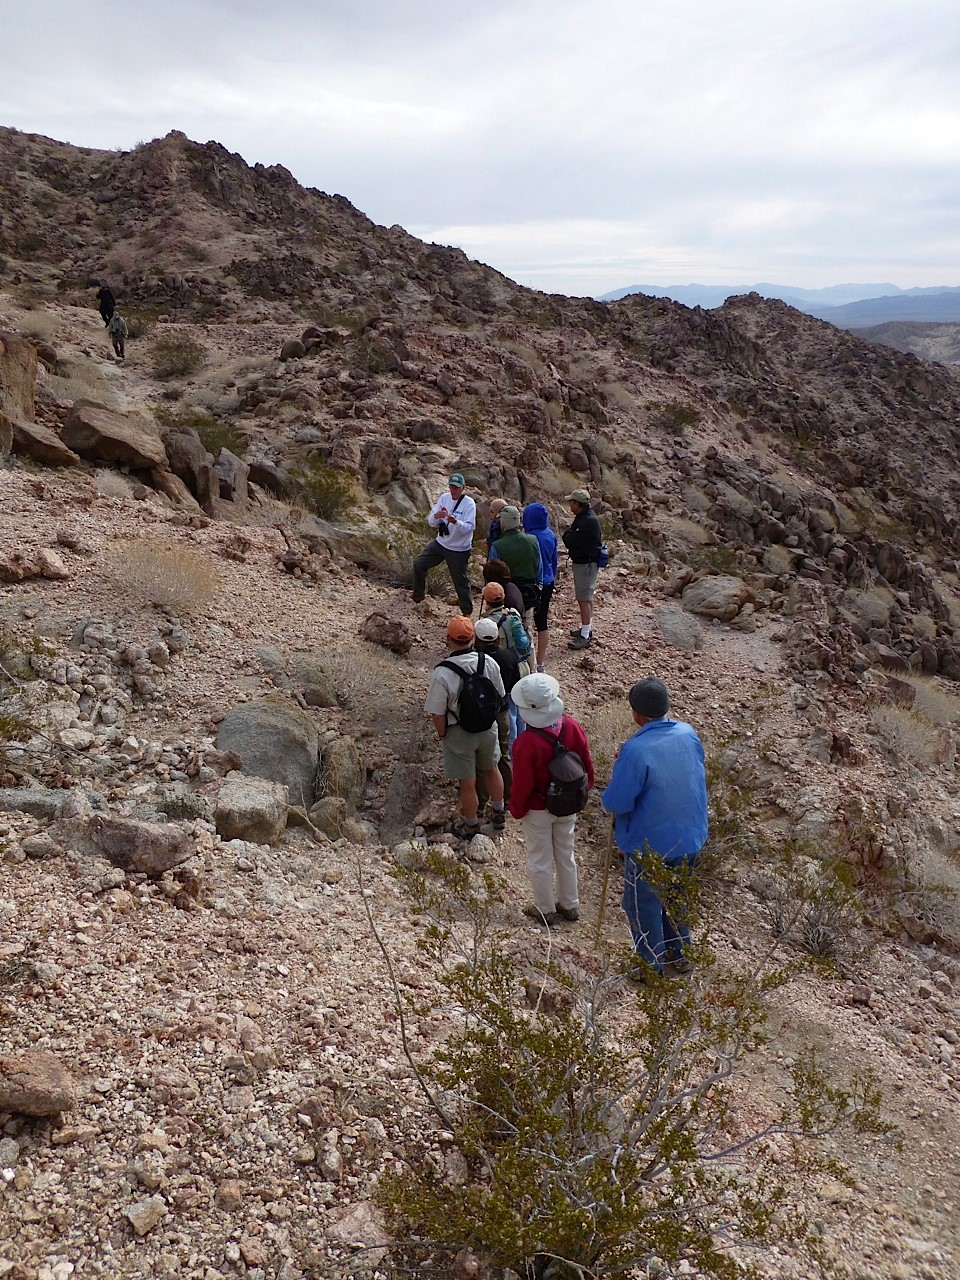 Guests enjoy a free geology lesson at Anza-Borrego Desert State Park